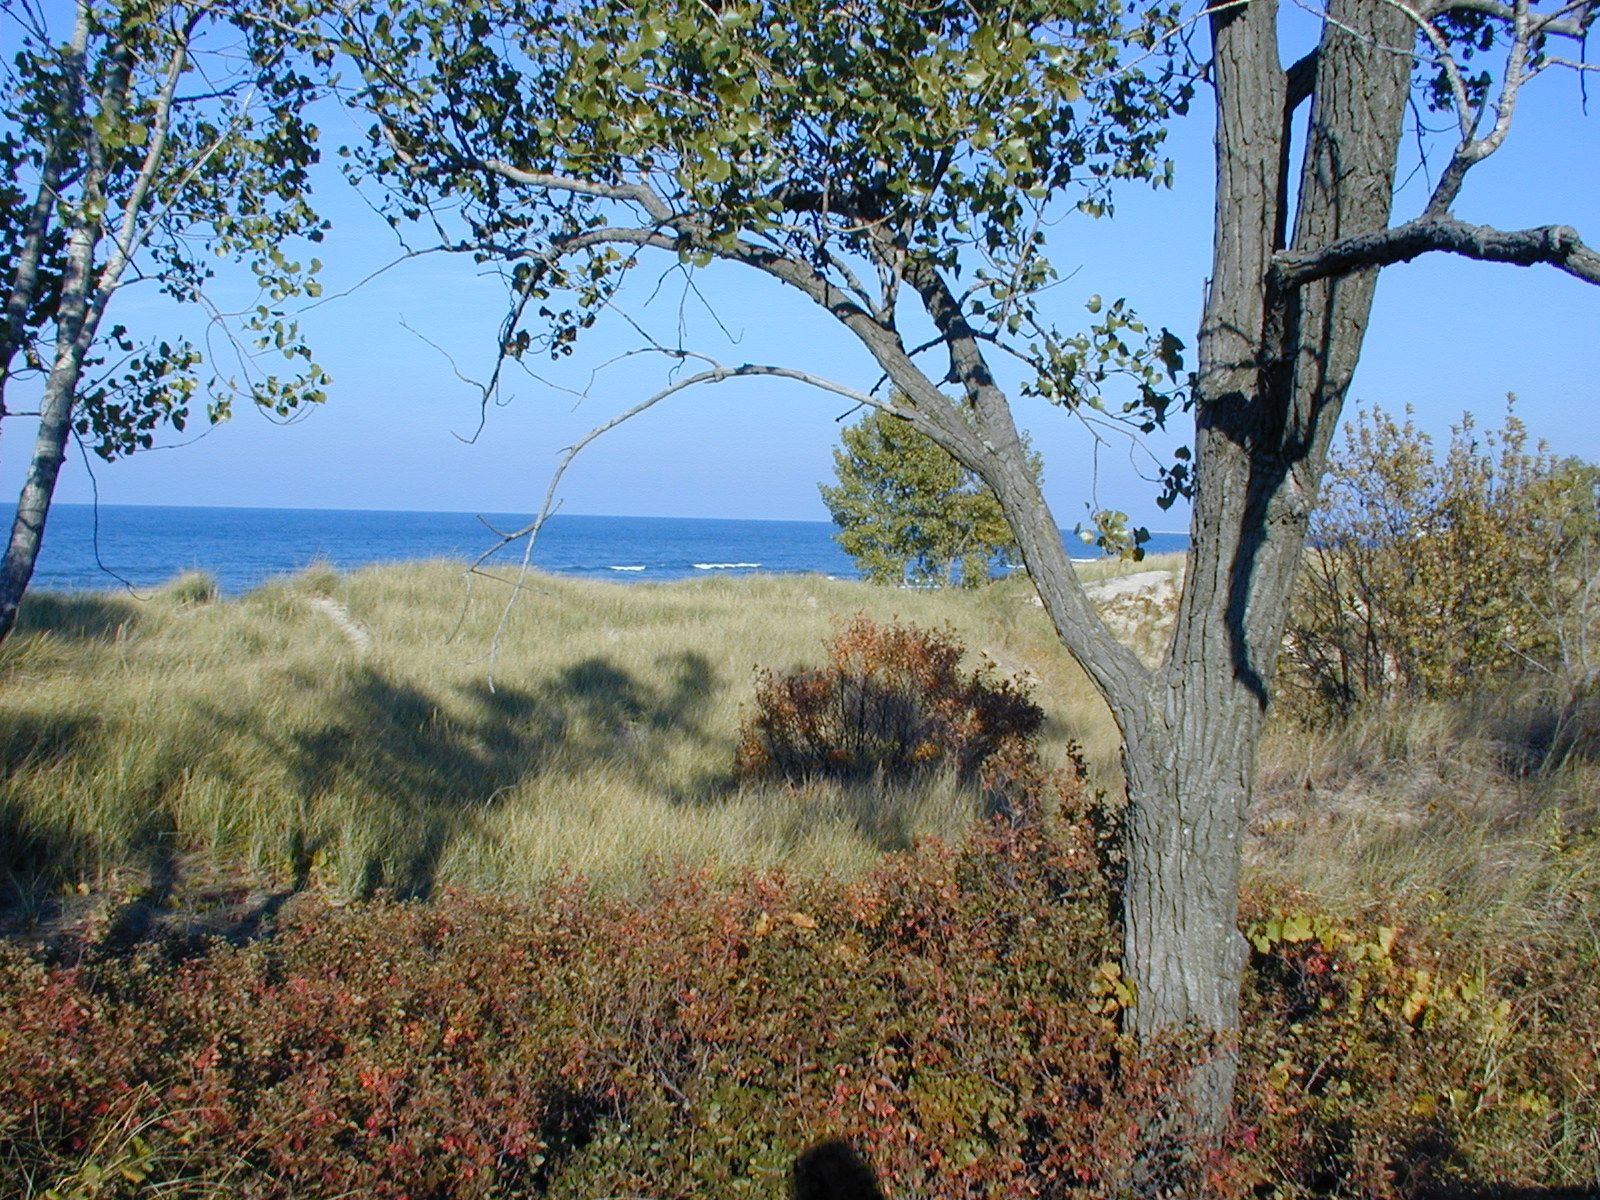 The Dunes. Just outside of Chicago Natural landmarks